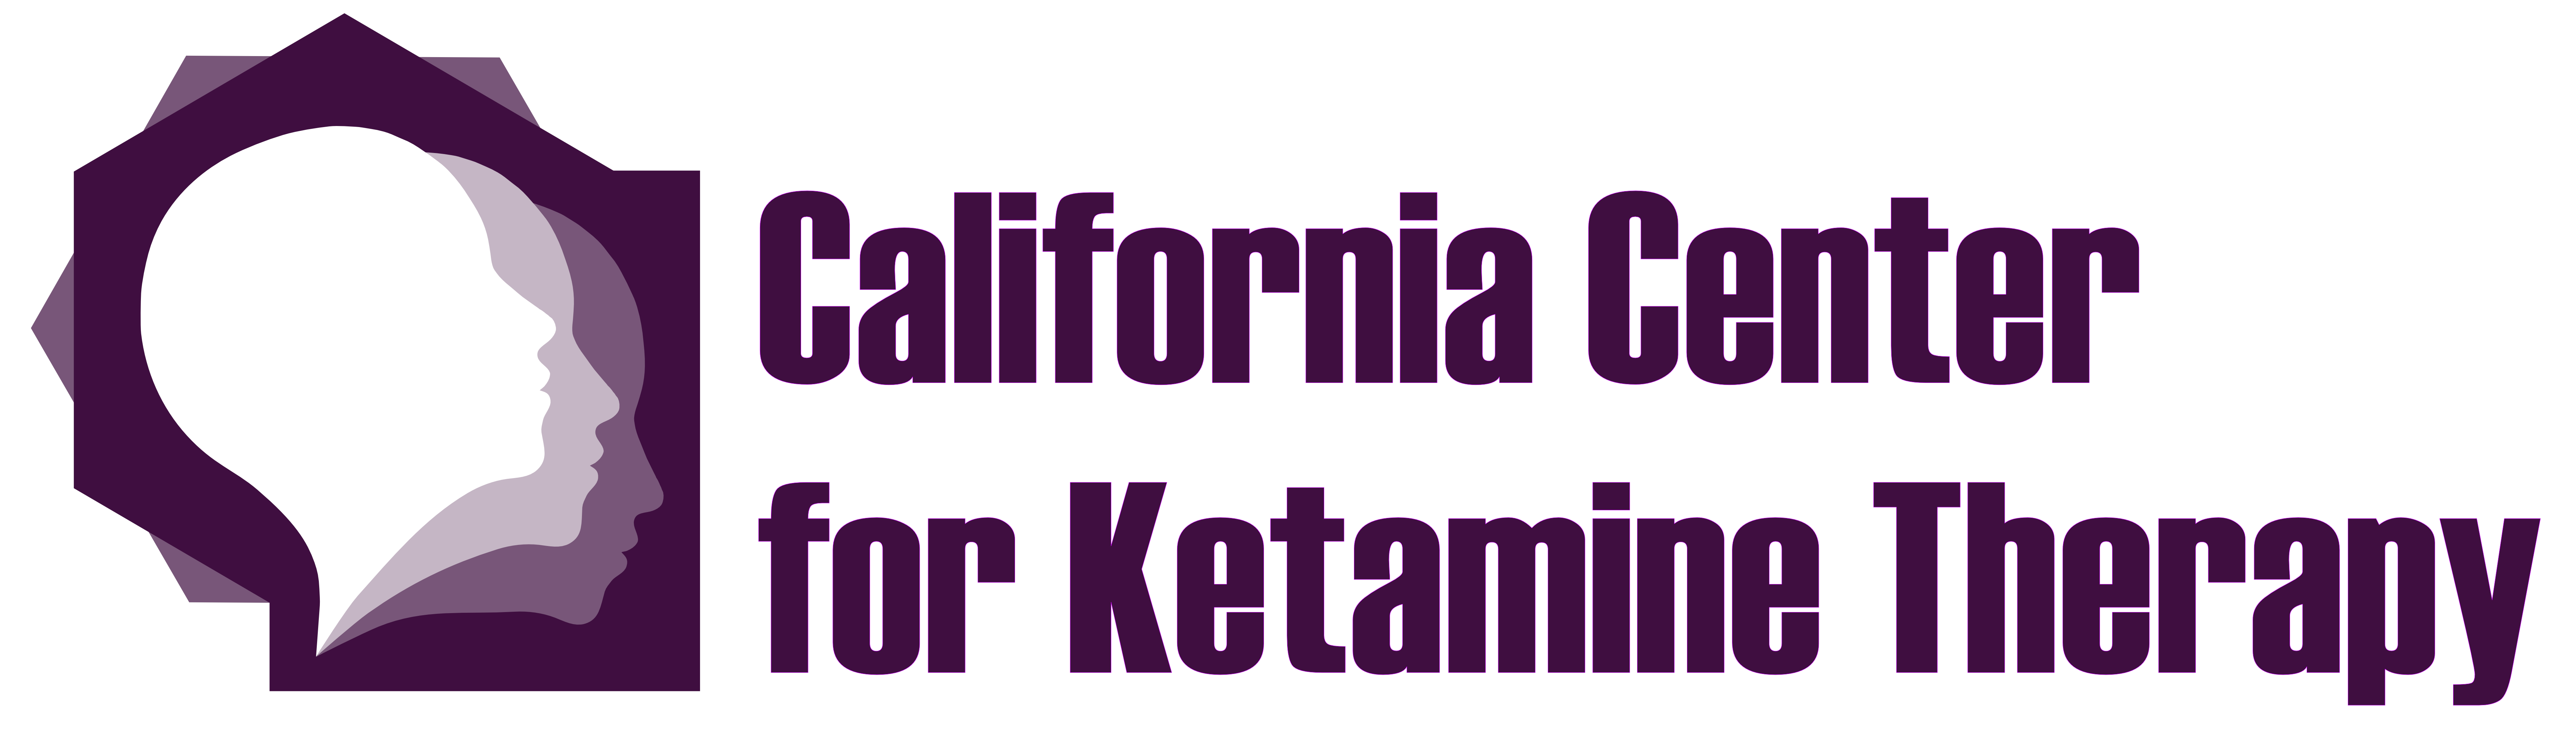 California Center for Ketamine Therapy is the Leading Ketamine Therapy Clinic in Los Angeles, CA